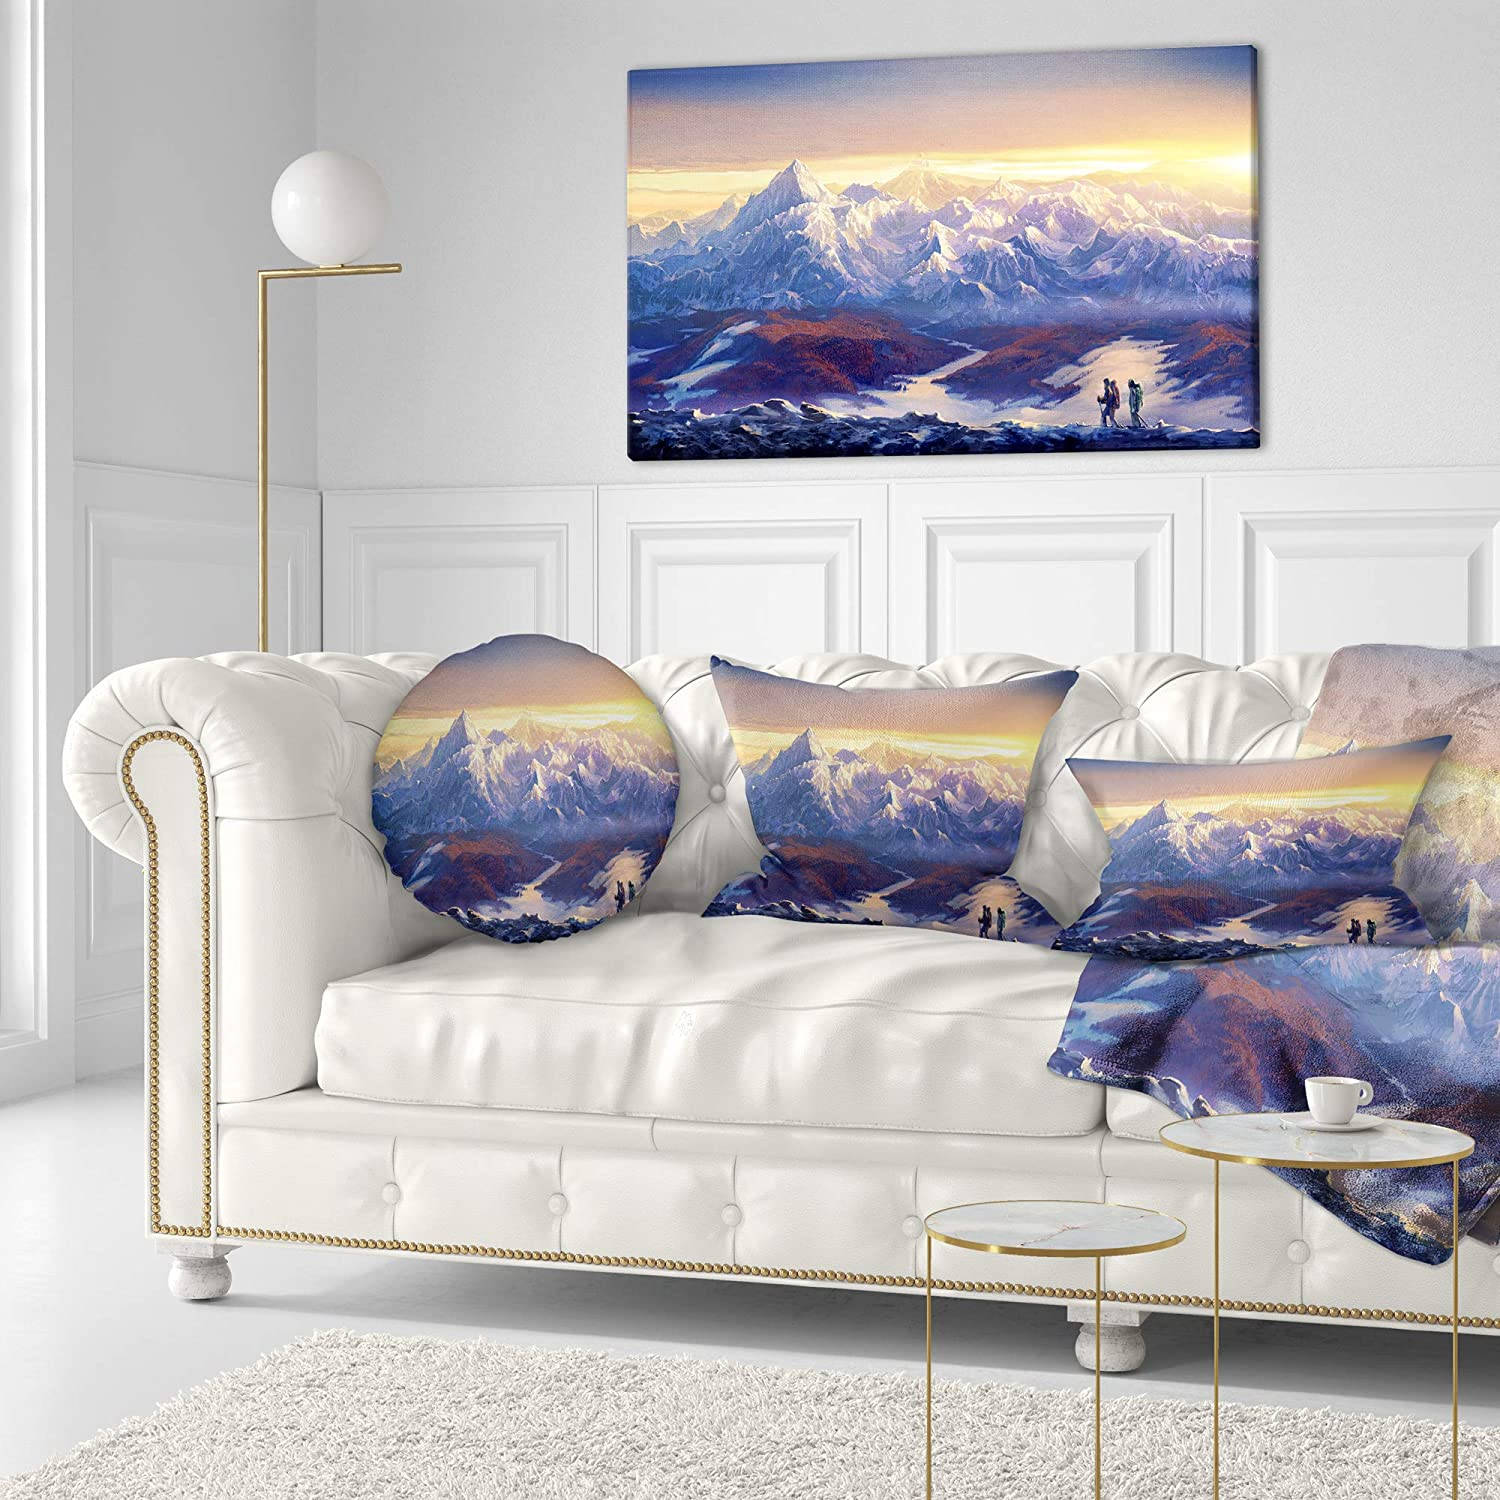 Designart CU13111-20-20-C Winter Mountains with Tourists Landscape Printed Round Cushion Cover for Living Room Sofa Throw Pillow 20